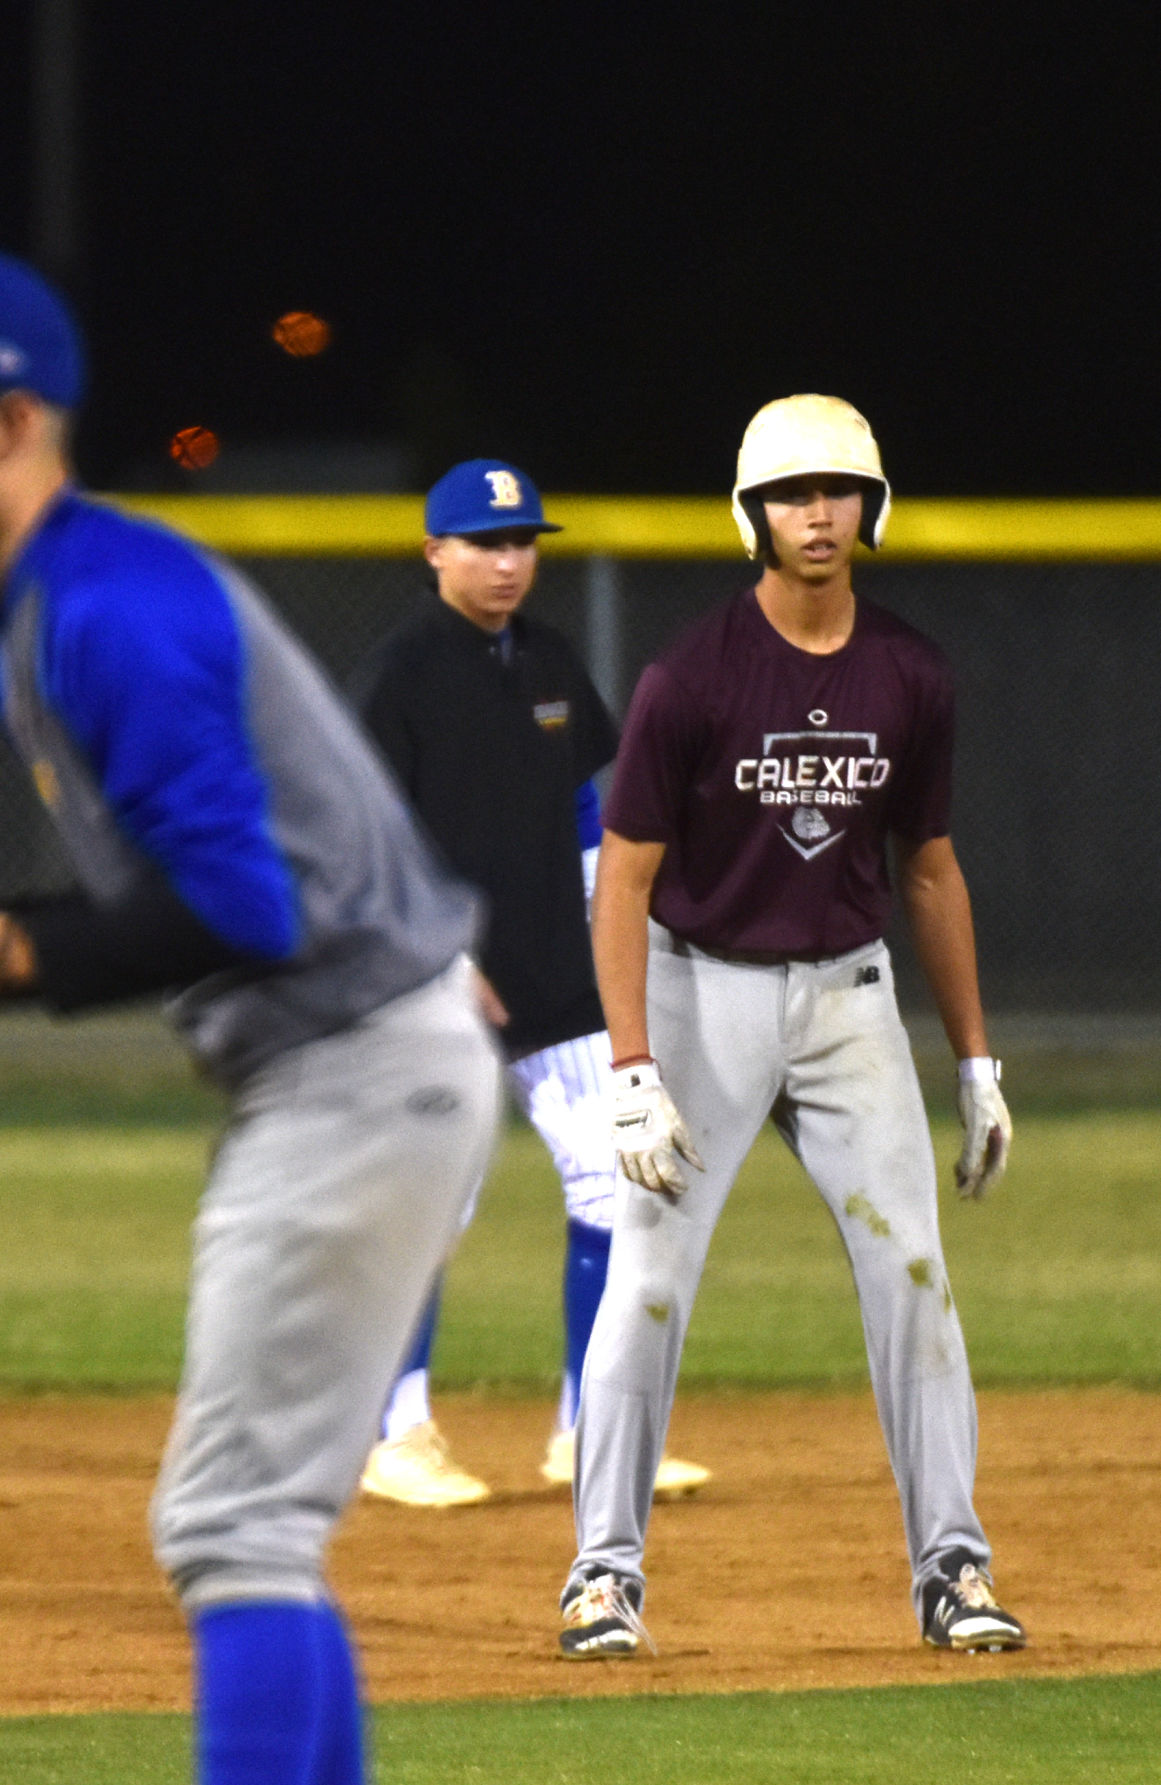 IVBN All-Star game gets Valley ready to 'Play ball!'